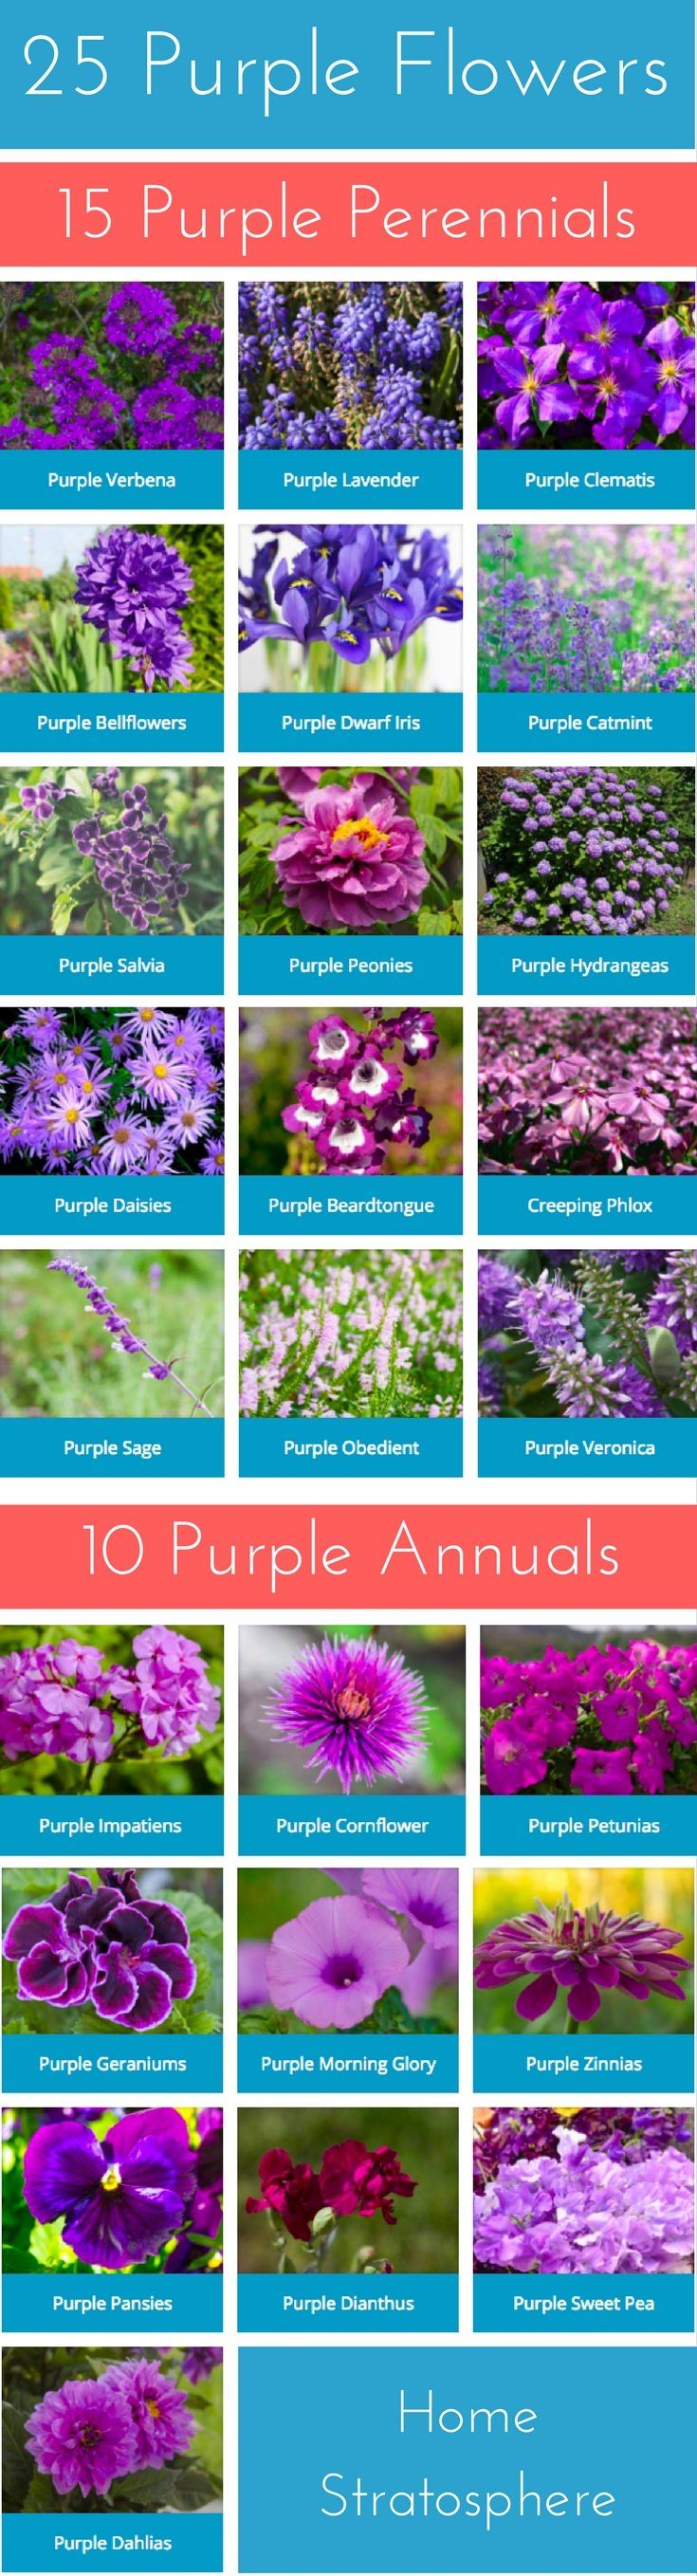 25 purple flower ideas for your garden pots and planters 25 purple flower ideas for your garden pots and planterstable of contents for the book ultimate guide to building decks mightylinksfo